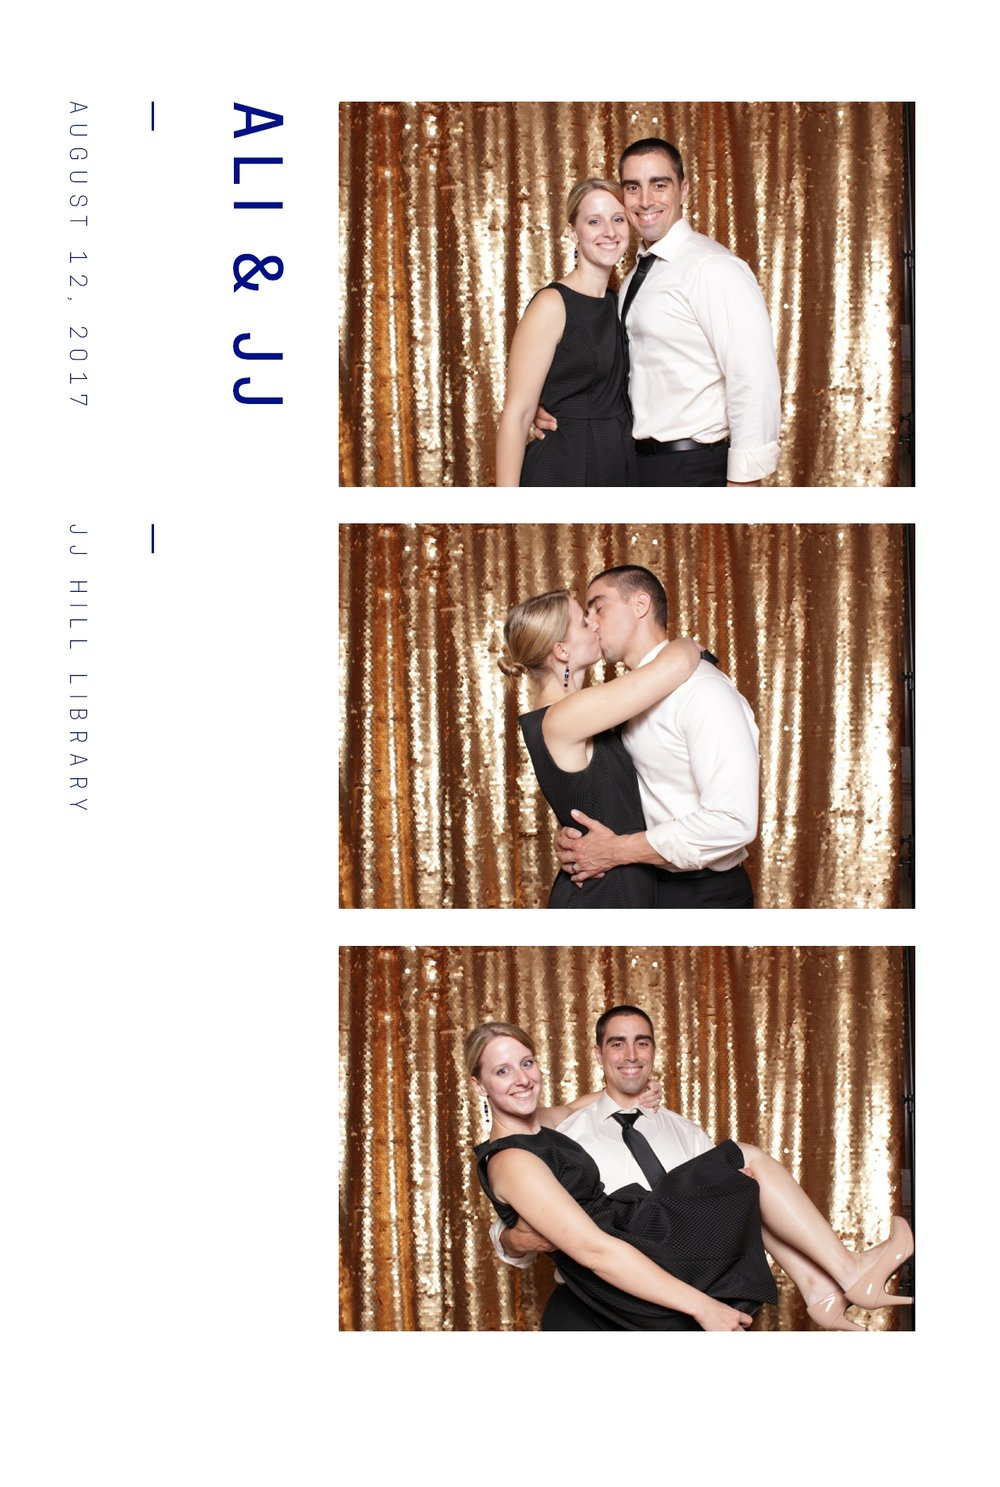 _Saint_Paul_JJ_Hill_Wedding_Photo_Booth (5).jpg